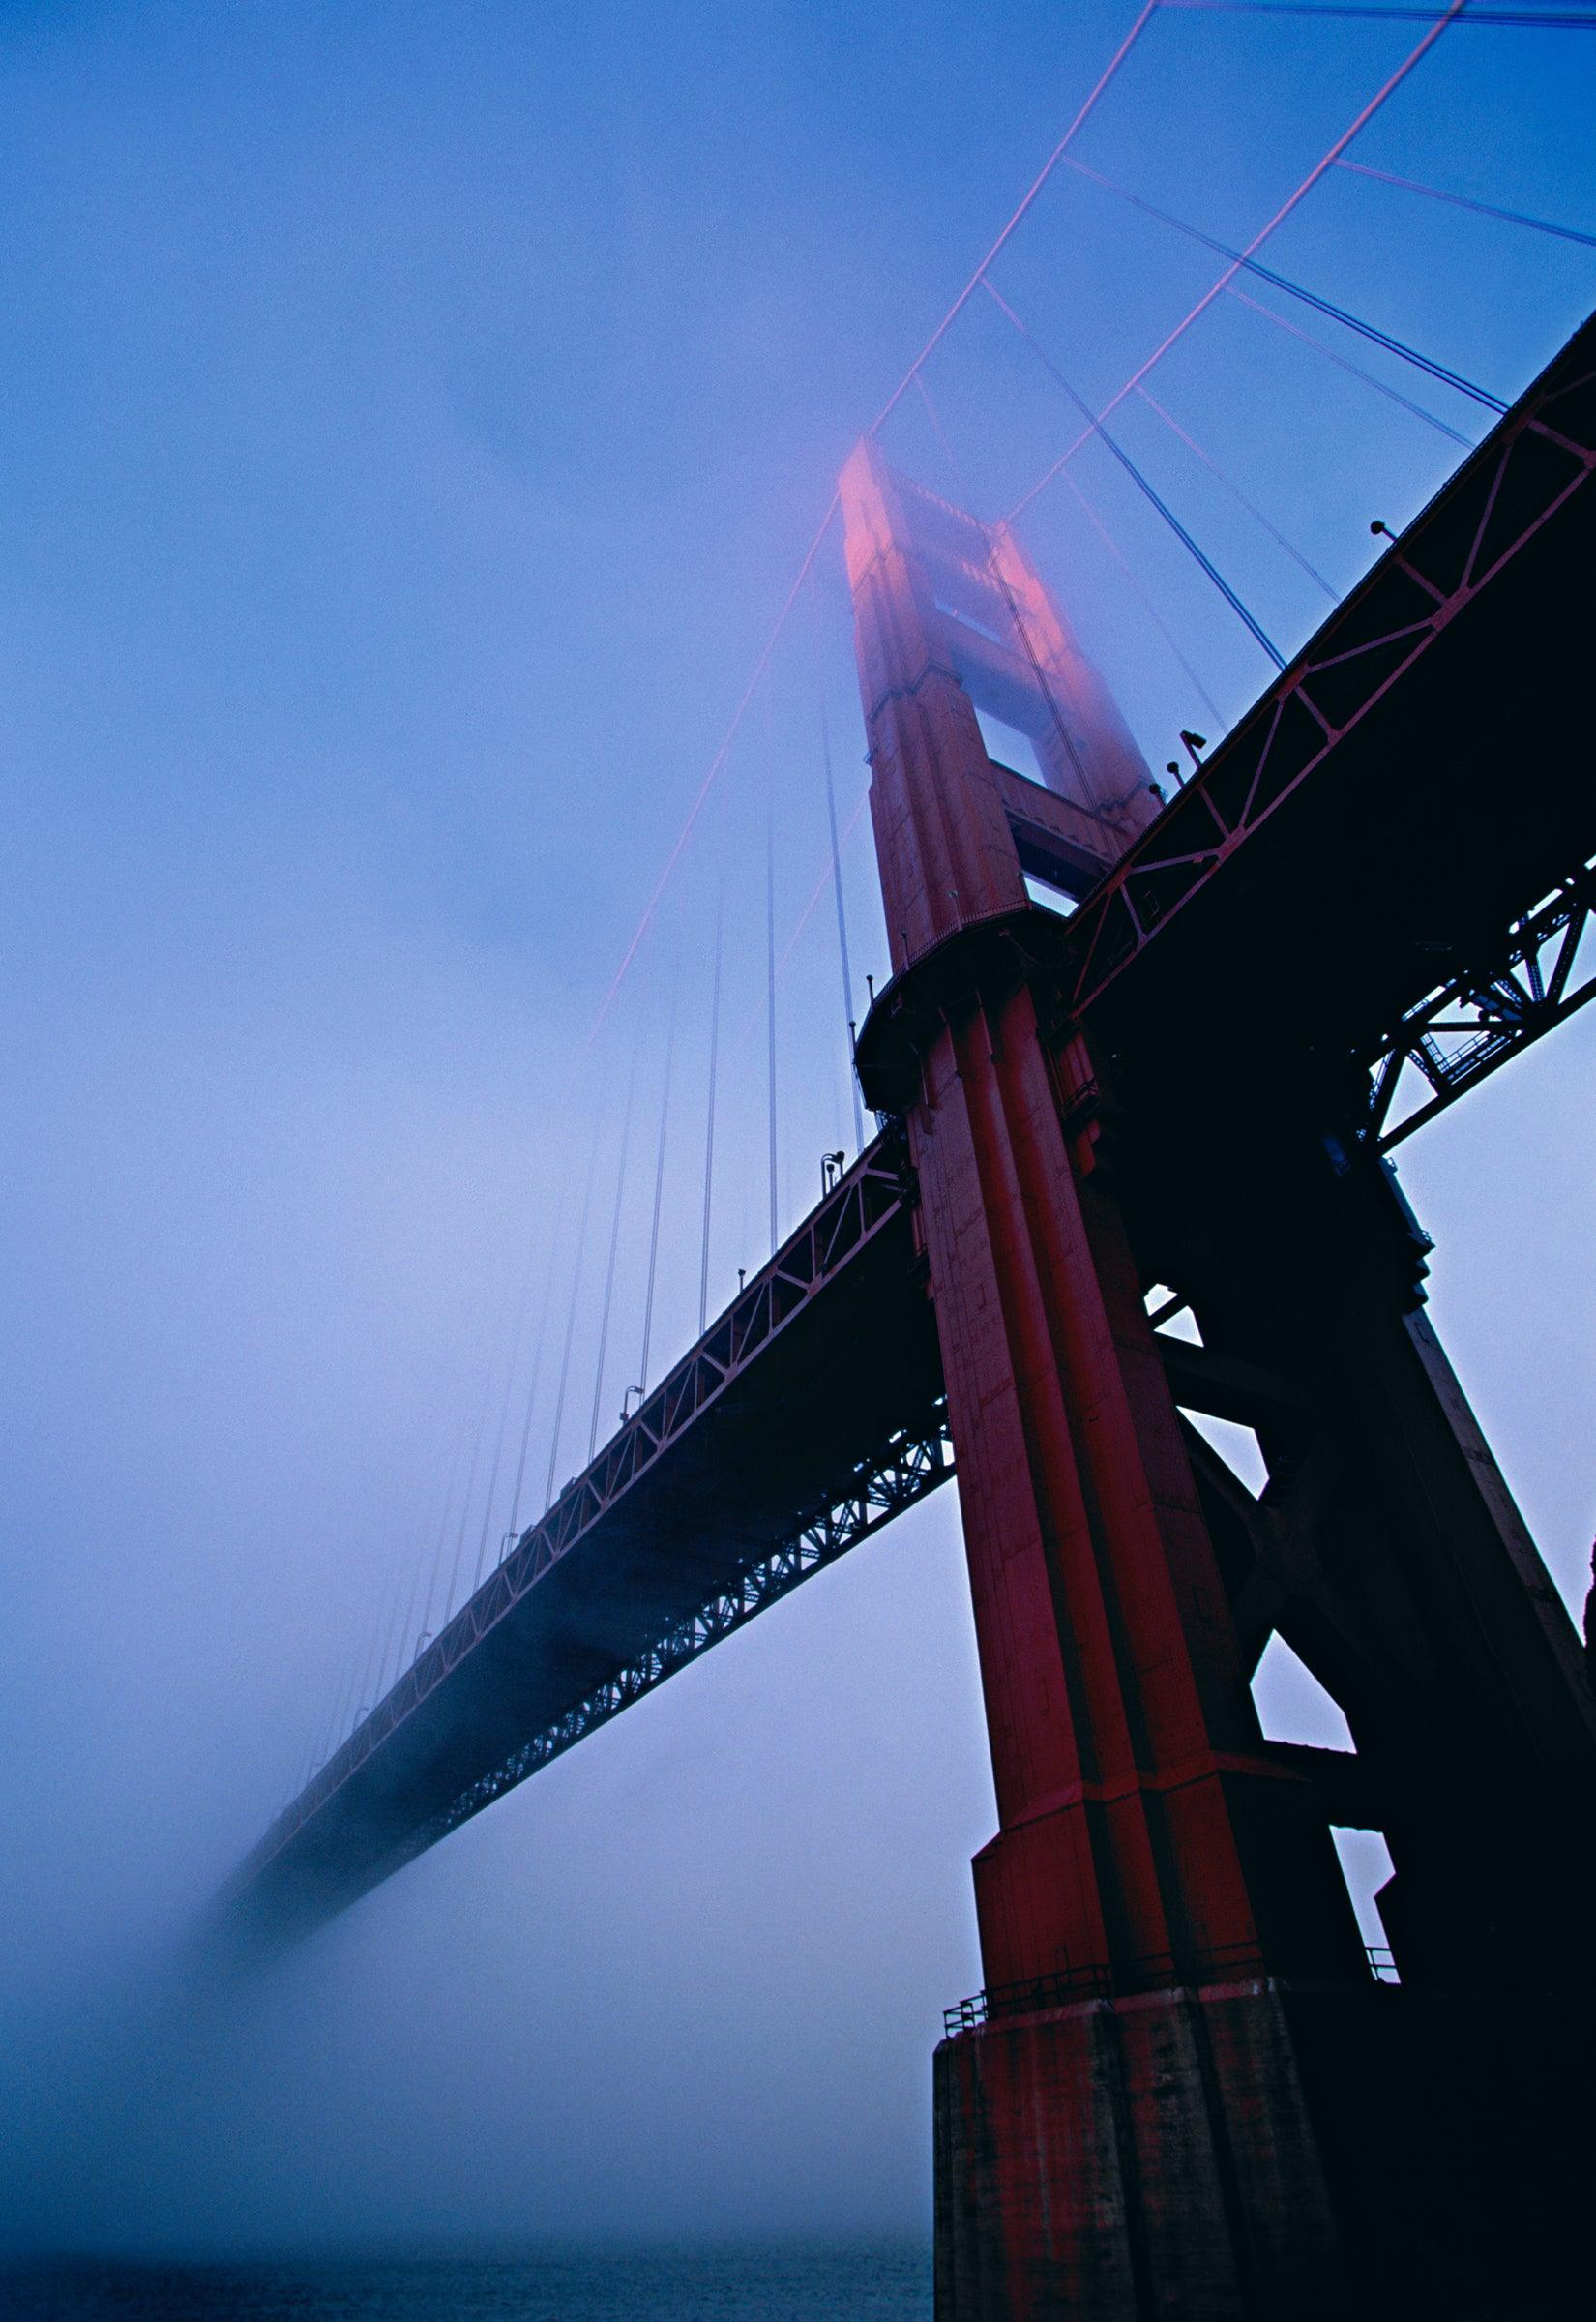 View looking up from under the Golden Gate Bridge in San Francisco covered with fog